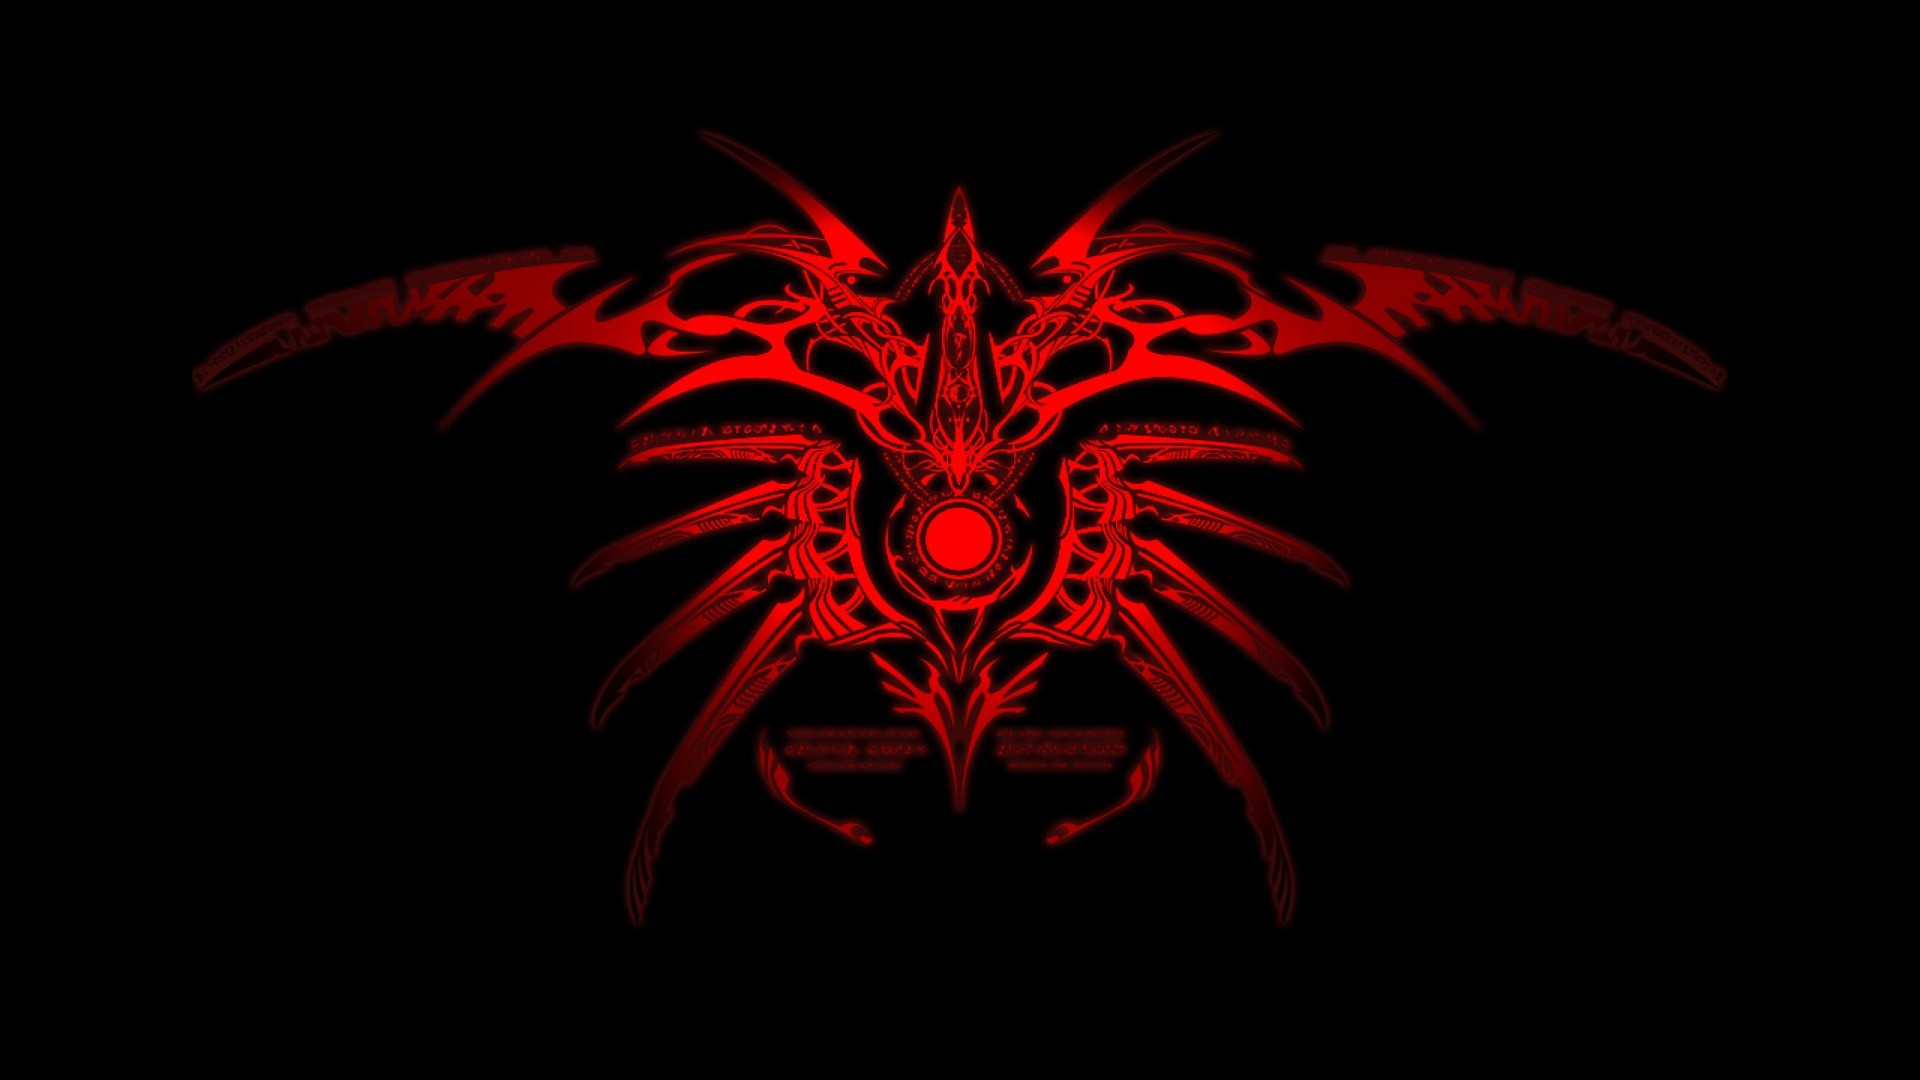 Download Cool Wallpapers Red Wallpaper 1920x1080 76 Cool Red